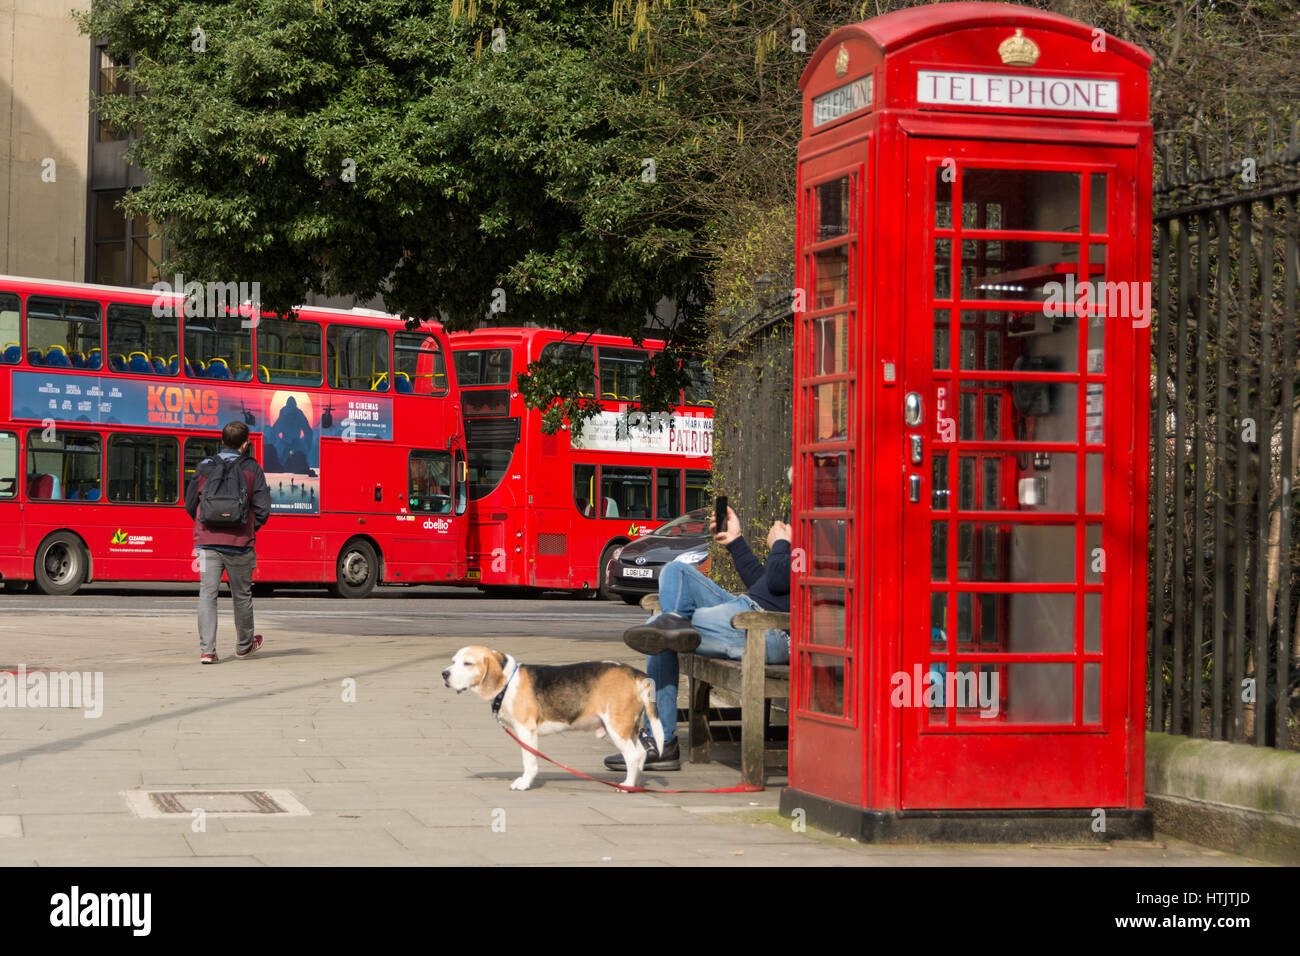 A Pod Works red telephone kiosk office in Russell Square, London, England, UK - Stock Image